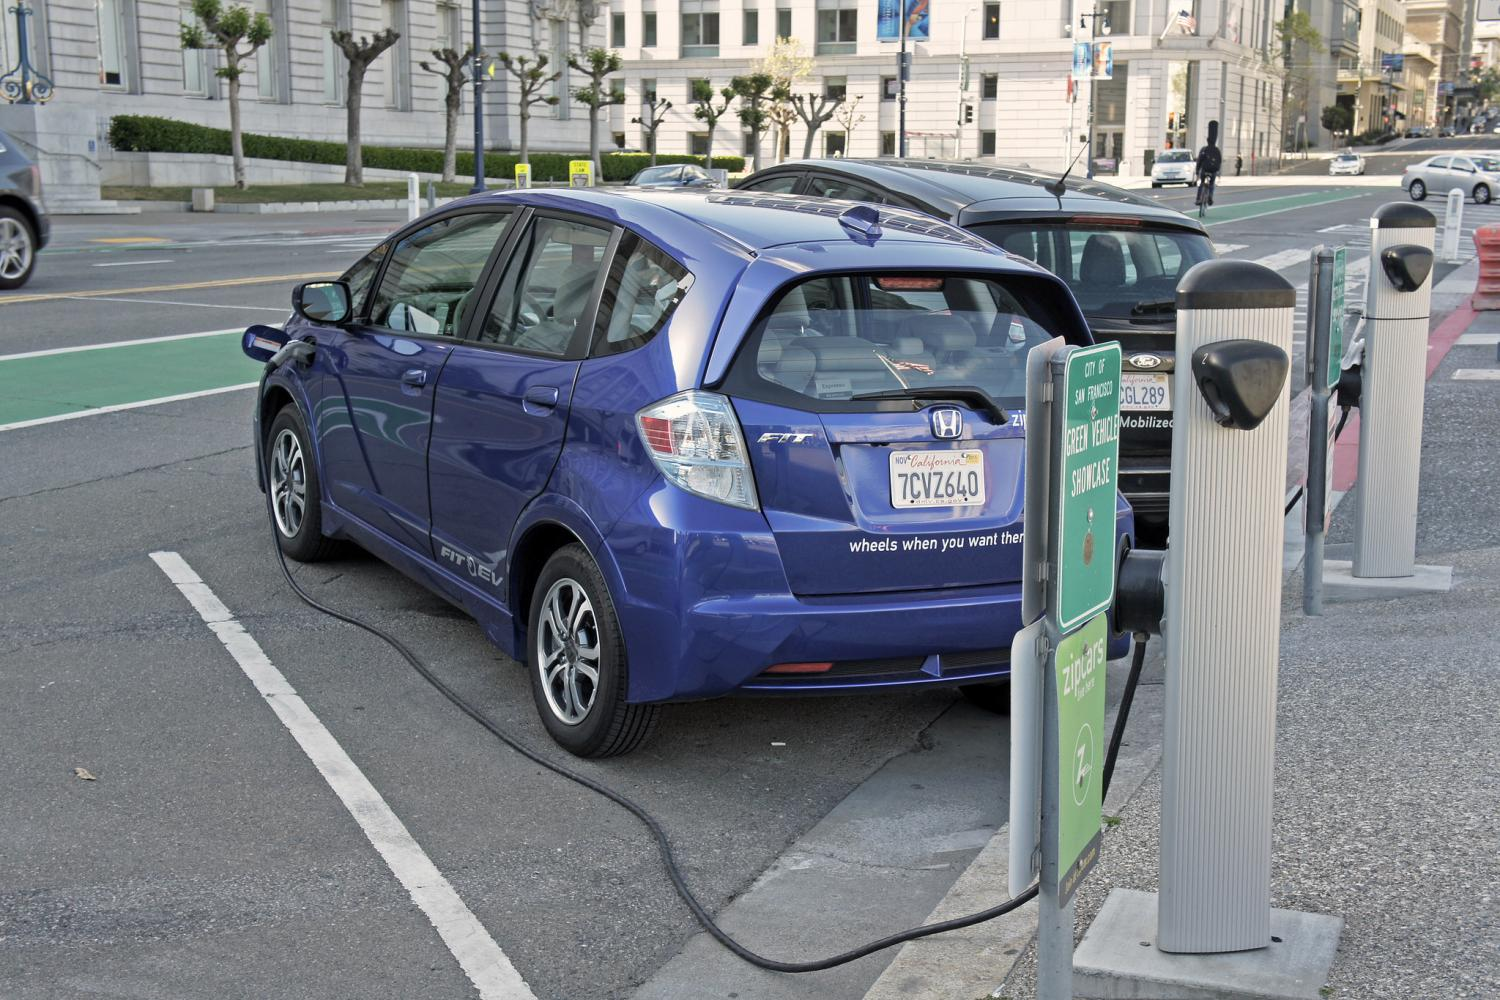 A new report suggests that the integration of electric vehicles into global corporate fleets and procurement policies is scaling up at a rapid pace.